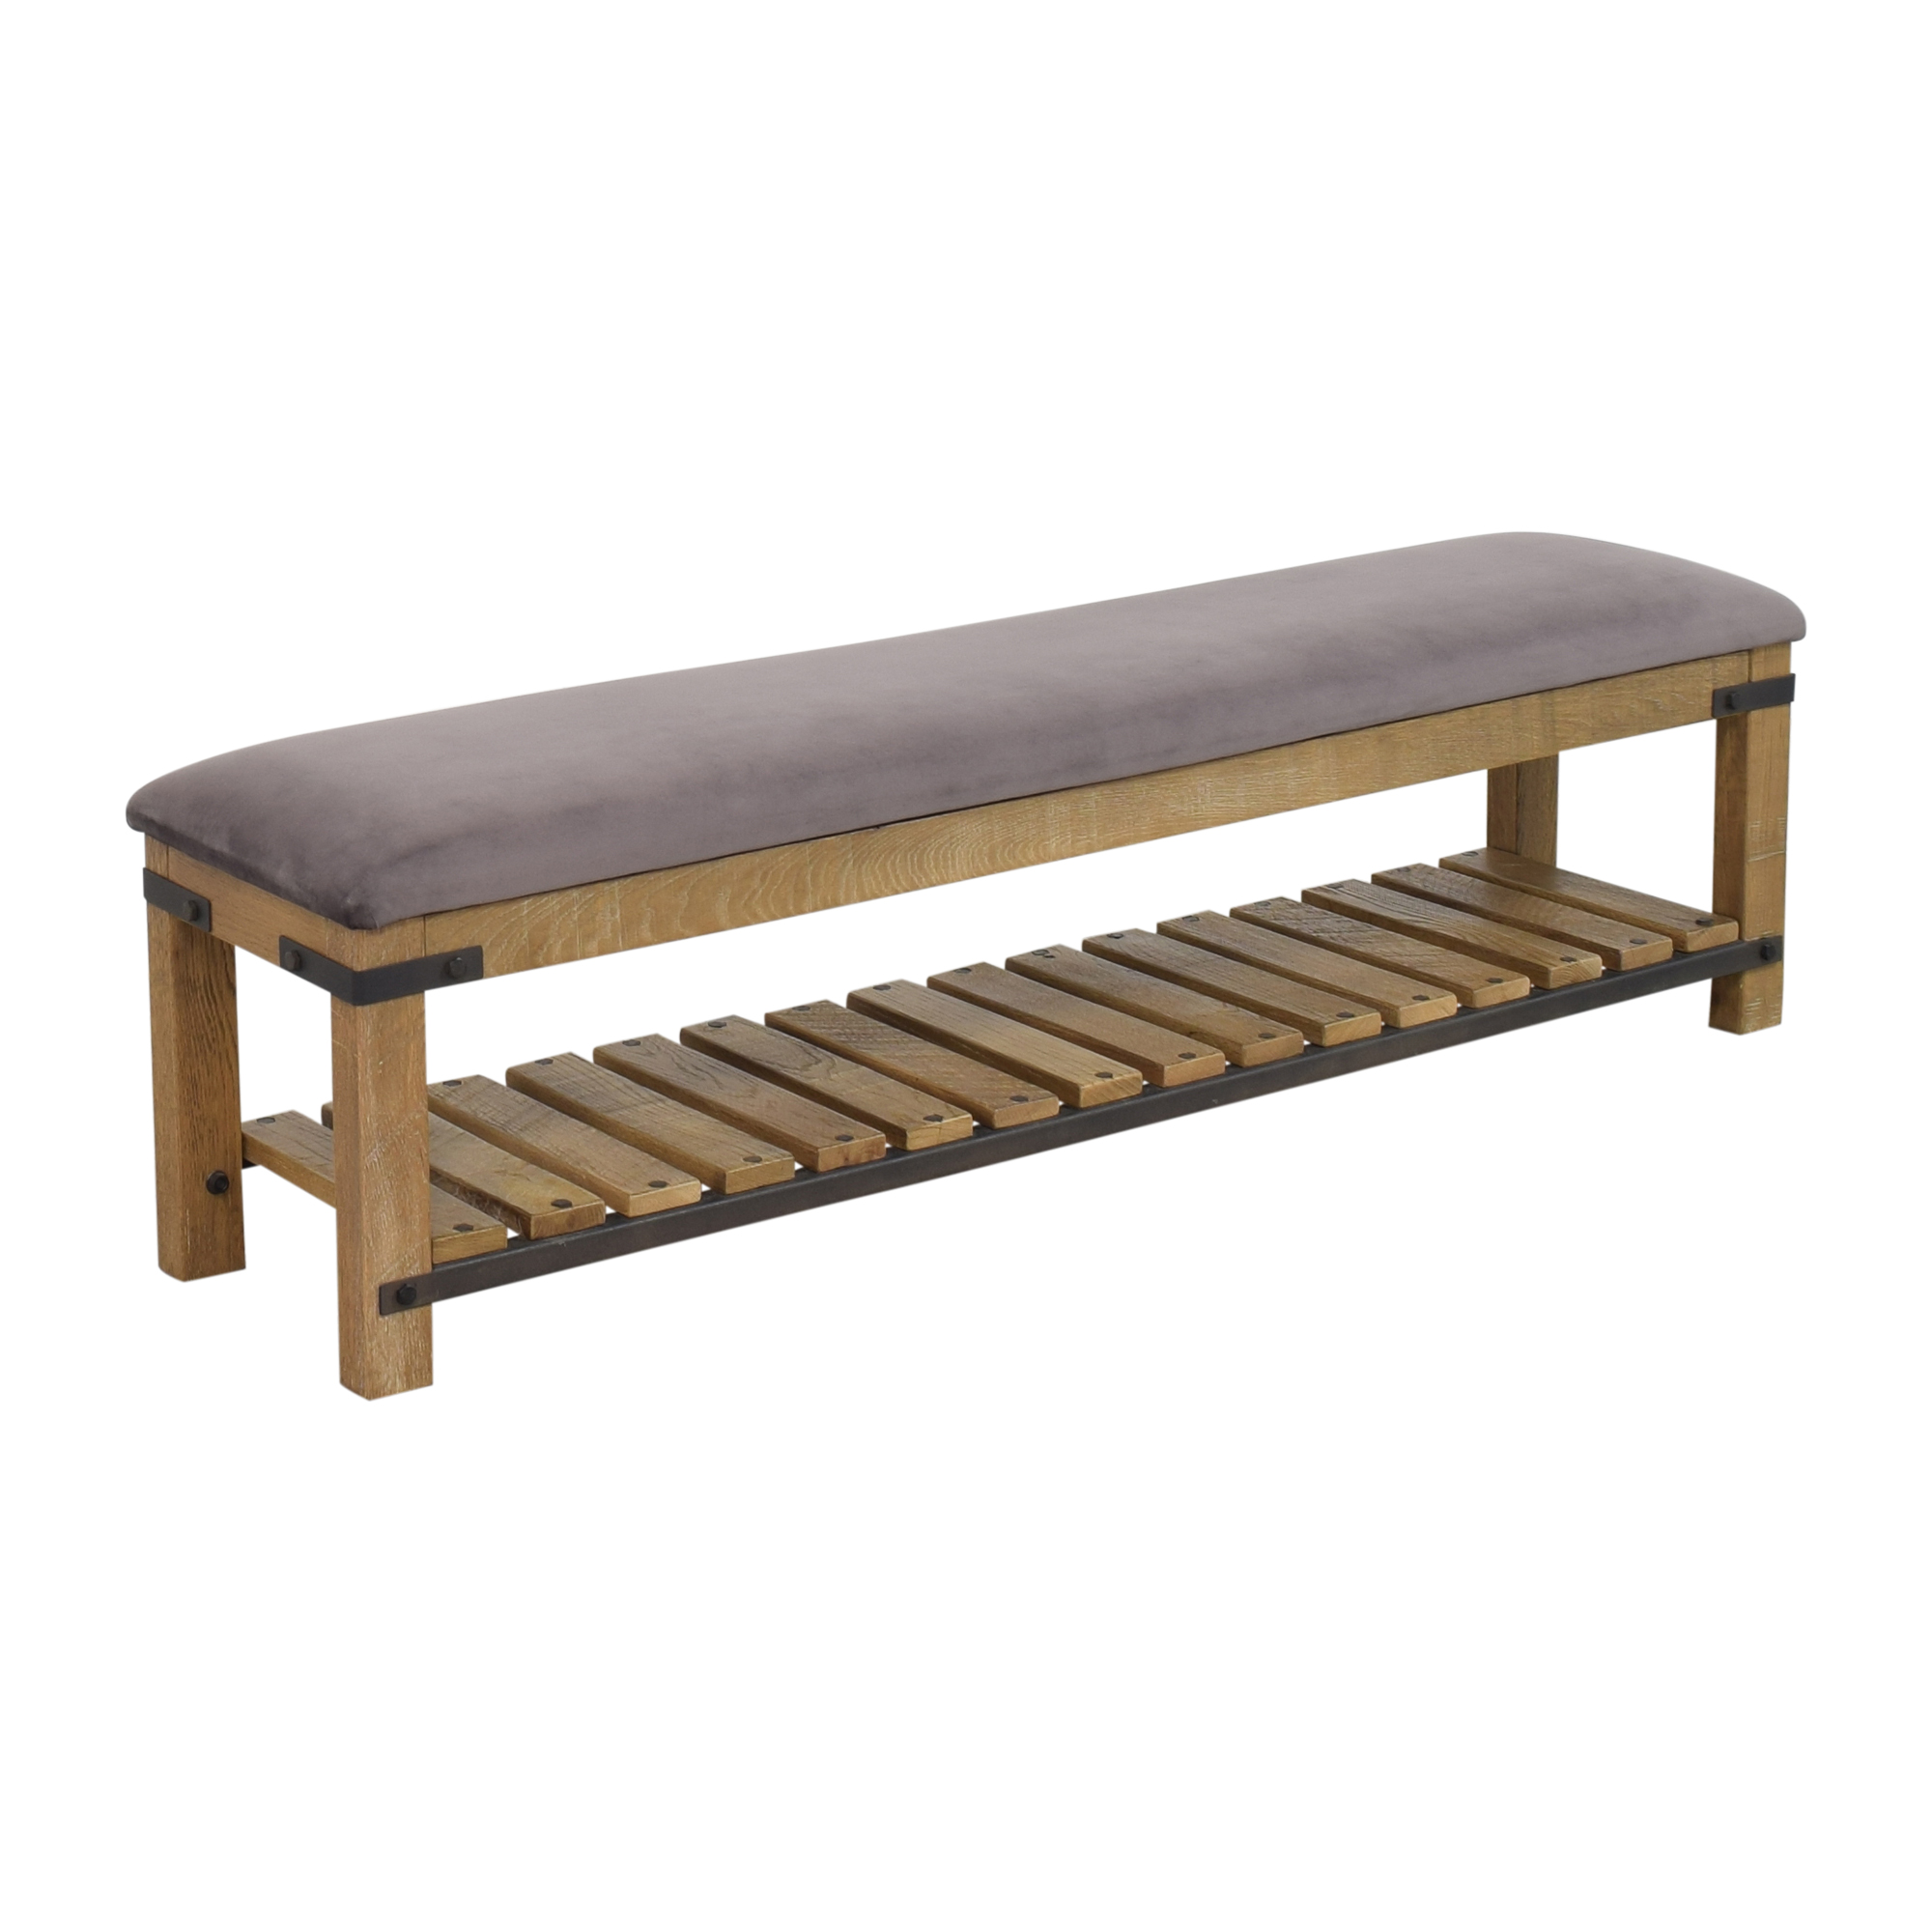 Arhaus Arhaus Bendelle Bench purple and brown